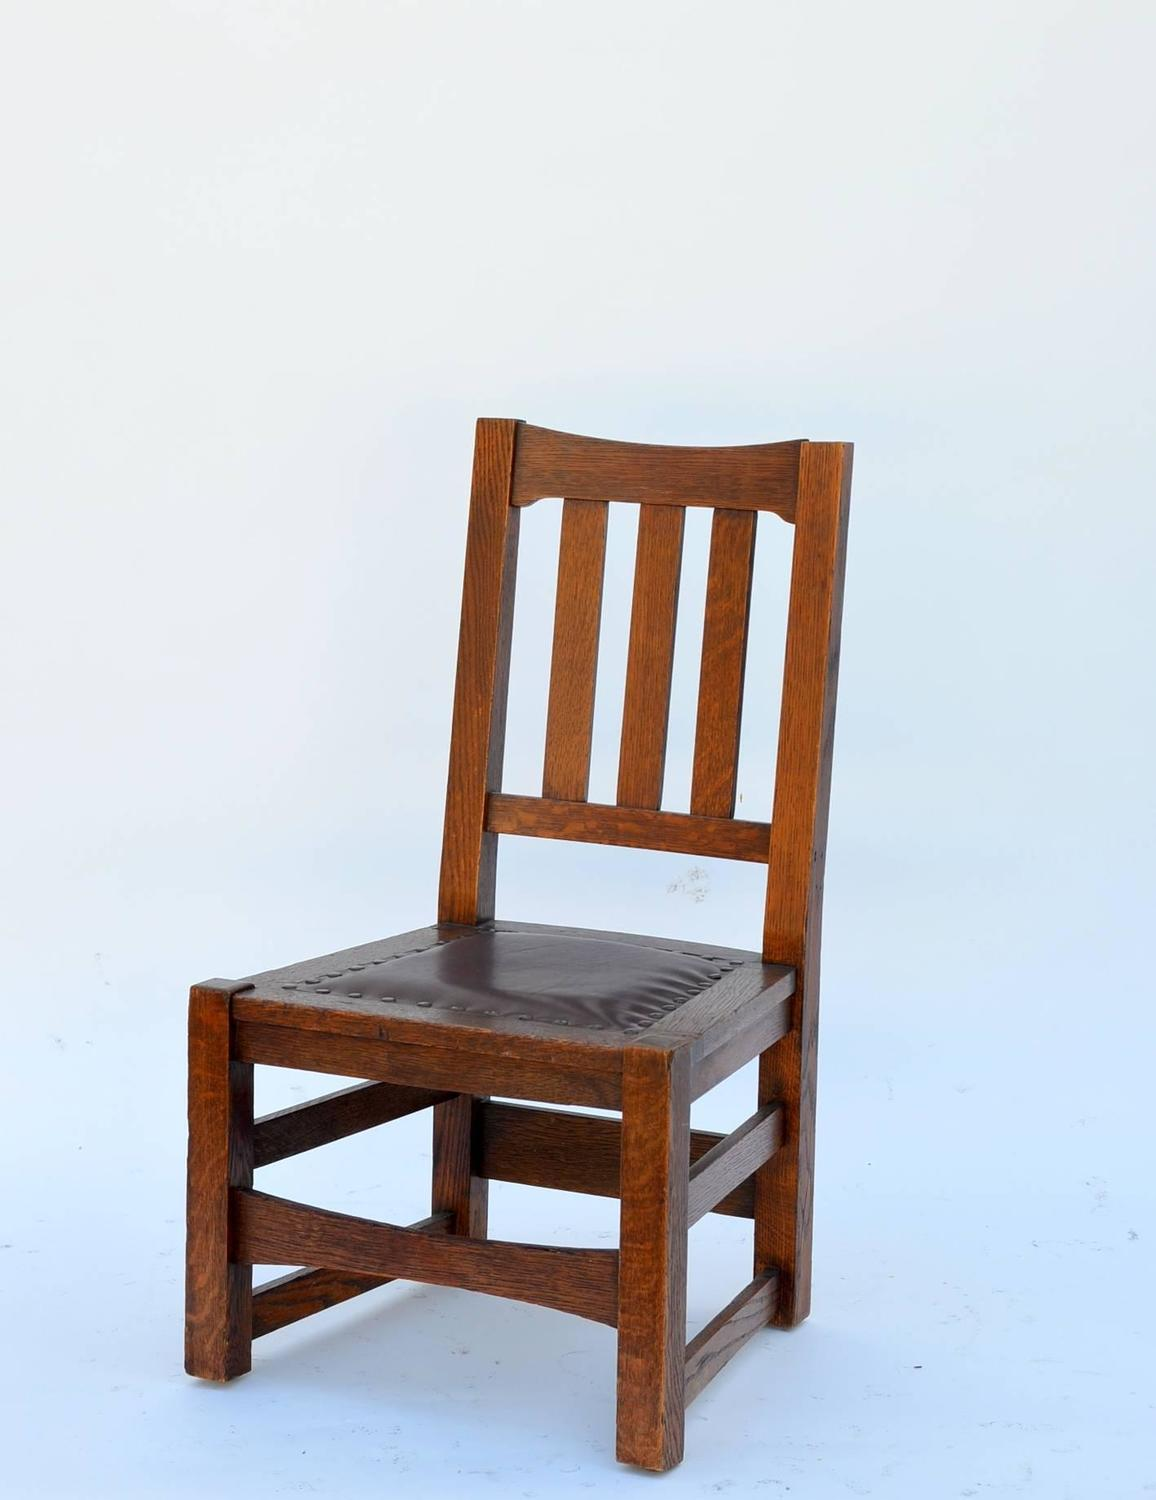 Original Mission Style Arts And Crafts Oak Chair By Stickley Brothers For Sale At 1stdibs